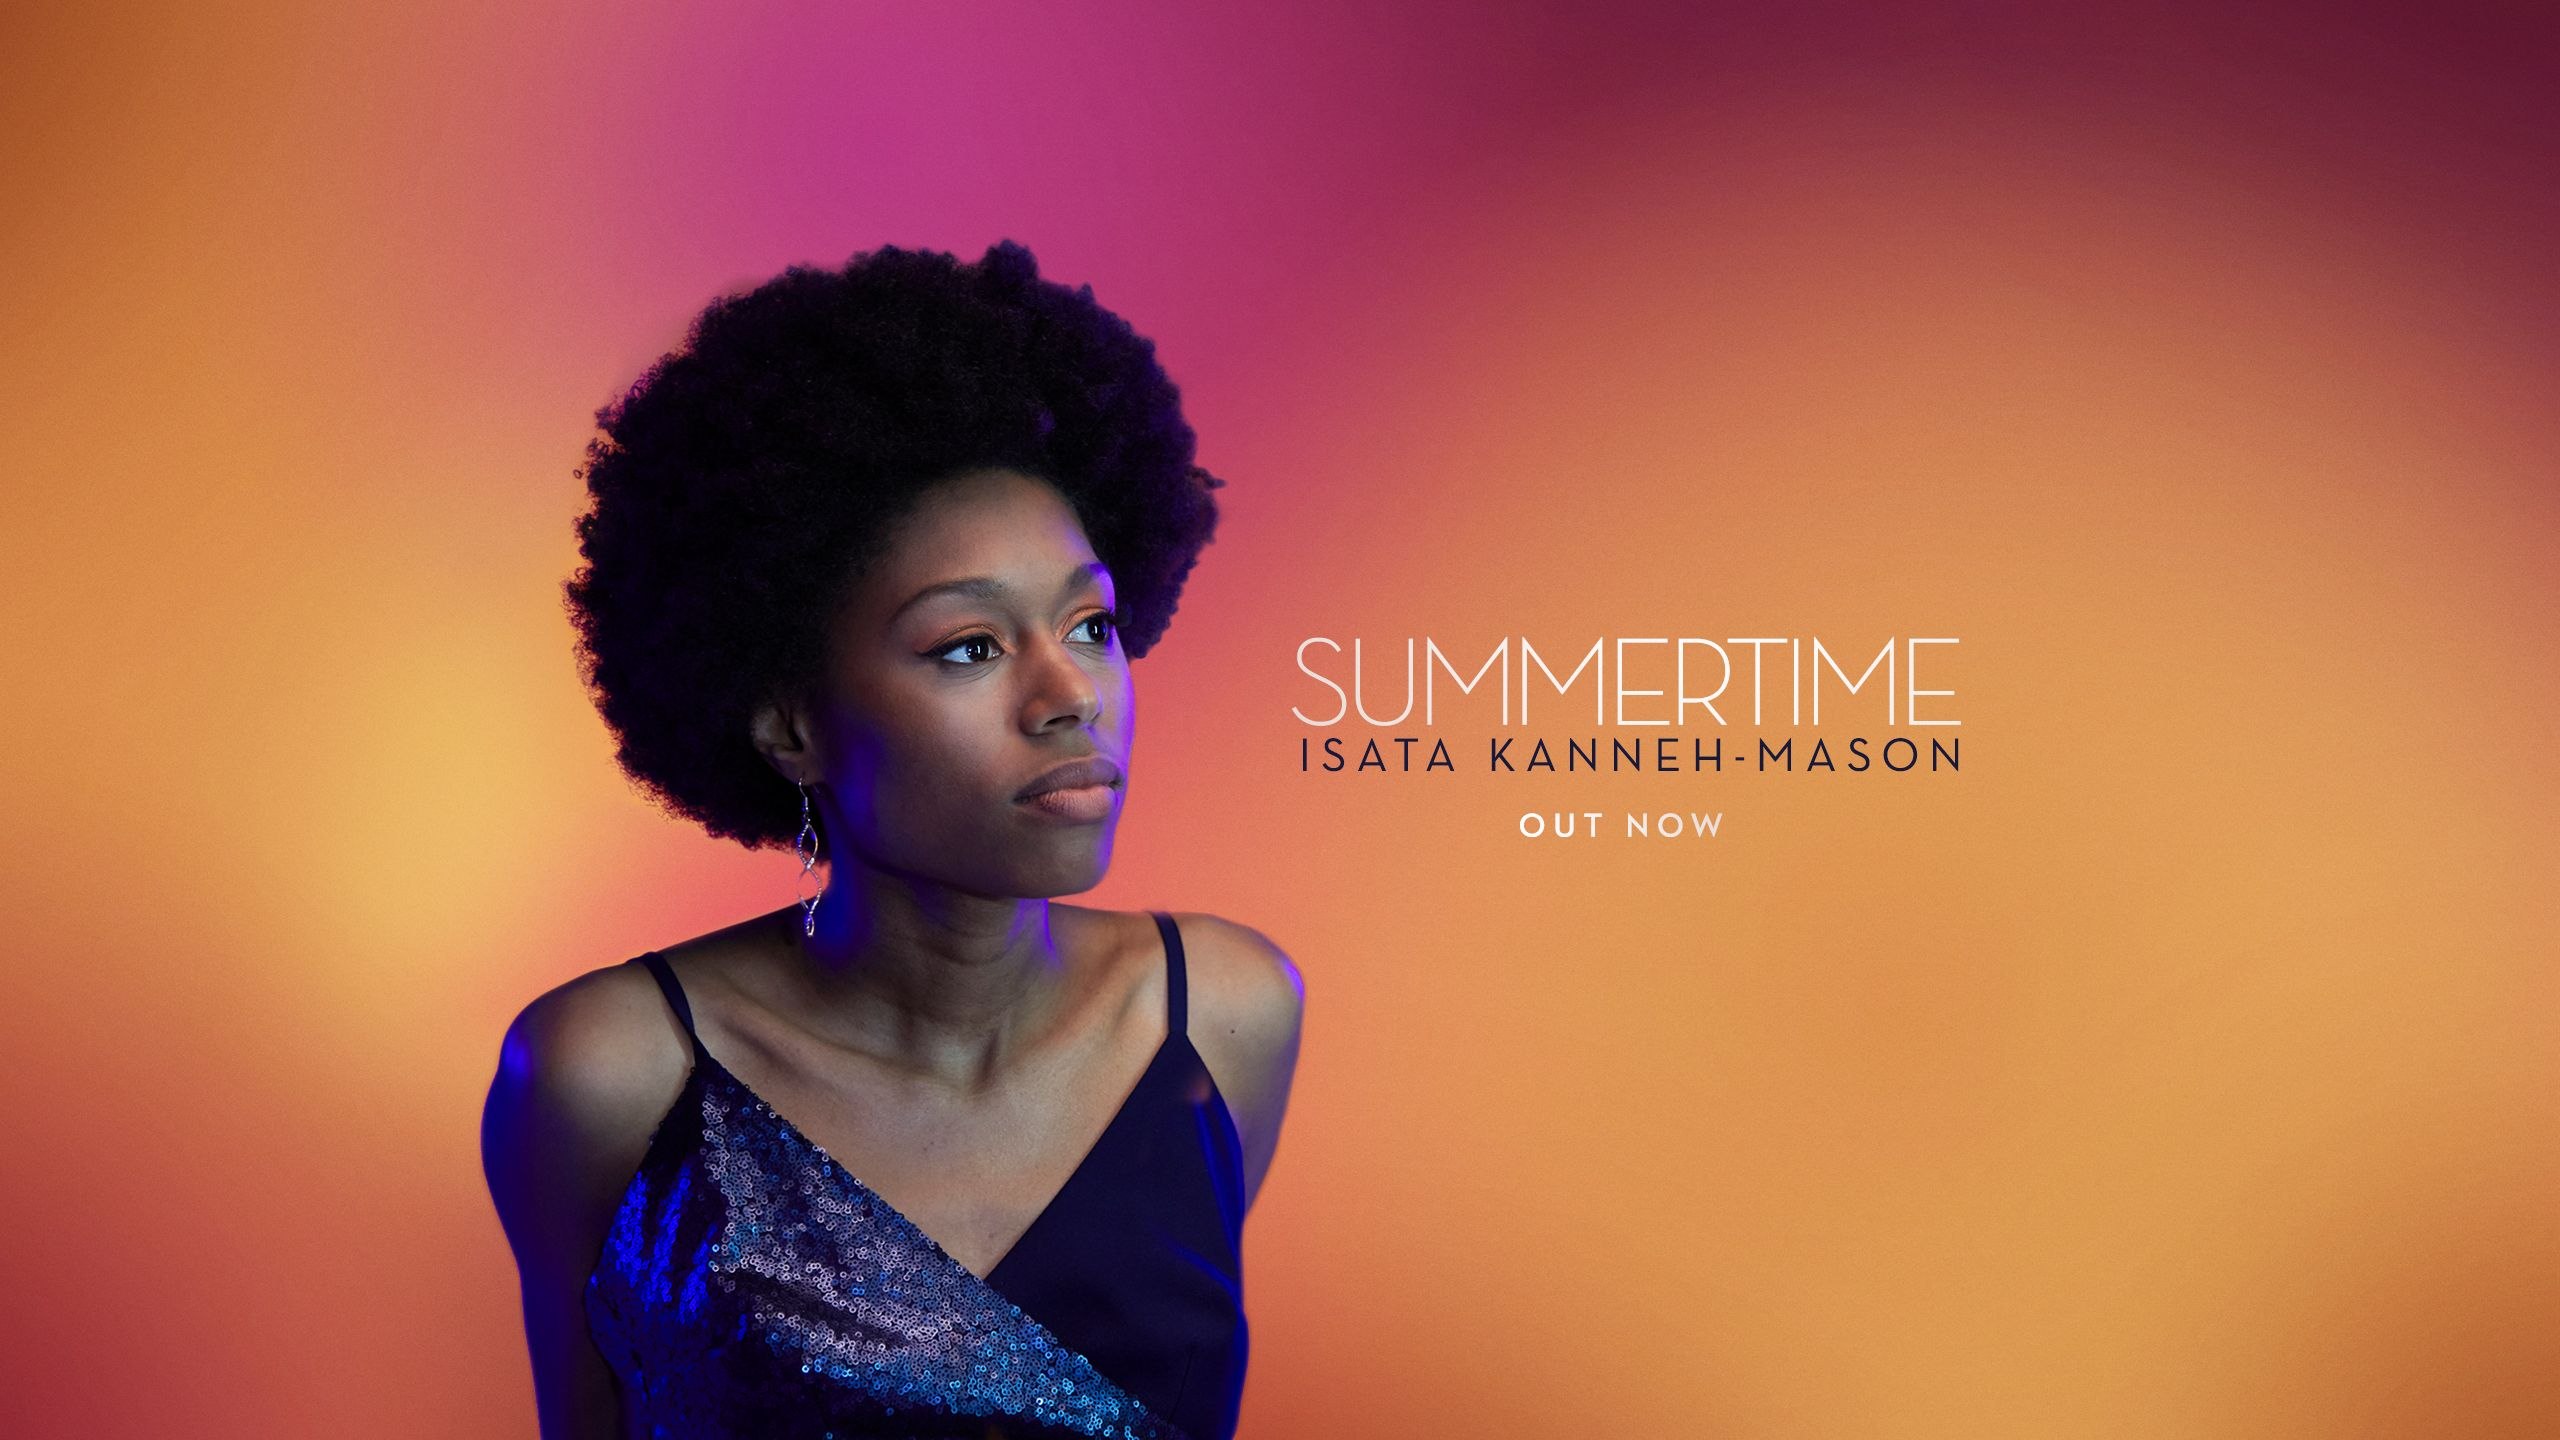 Summertime Out Now